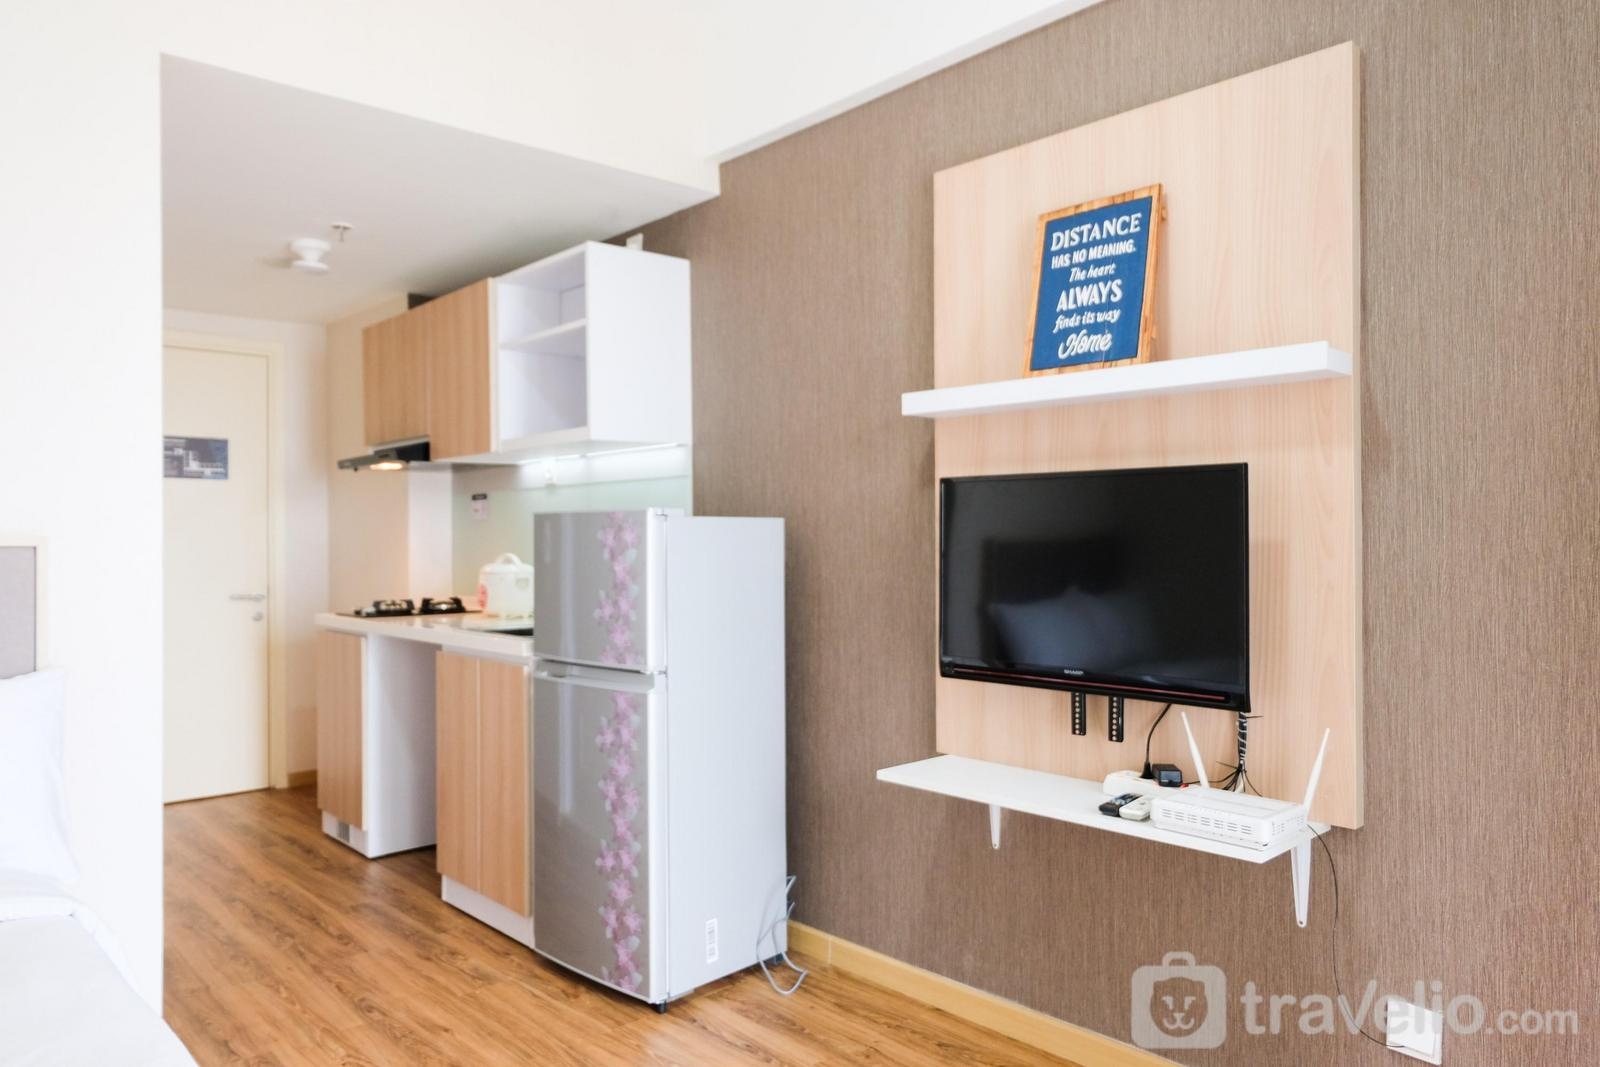 M Town Residence - Comfy Studio Apartment with Extra Bed at M-Town Residence By Travelio